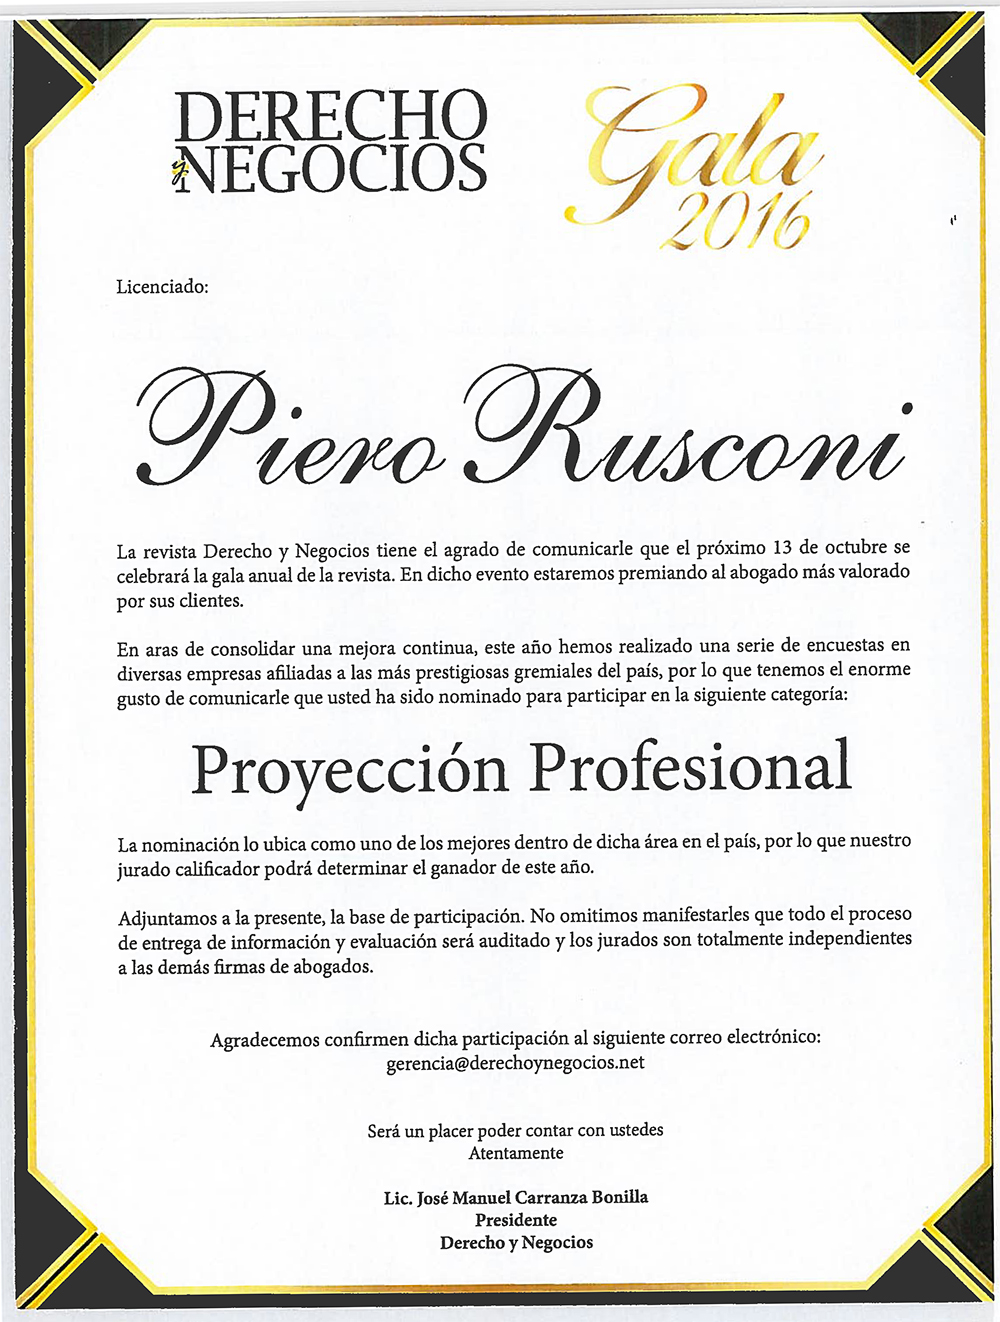 Piero Rusconi Bolaños has been nominated to the Award of Professional Projection of the prominent publication Derecho y Negocios